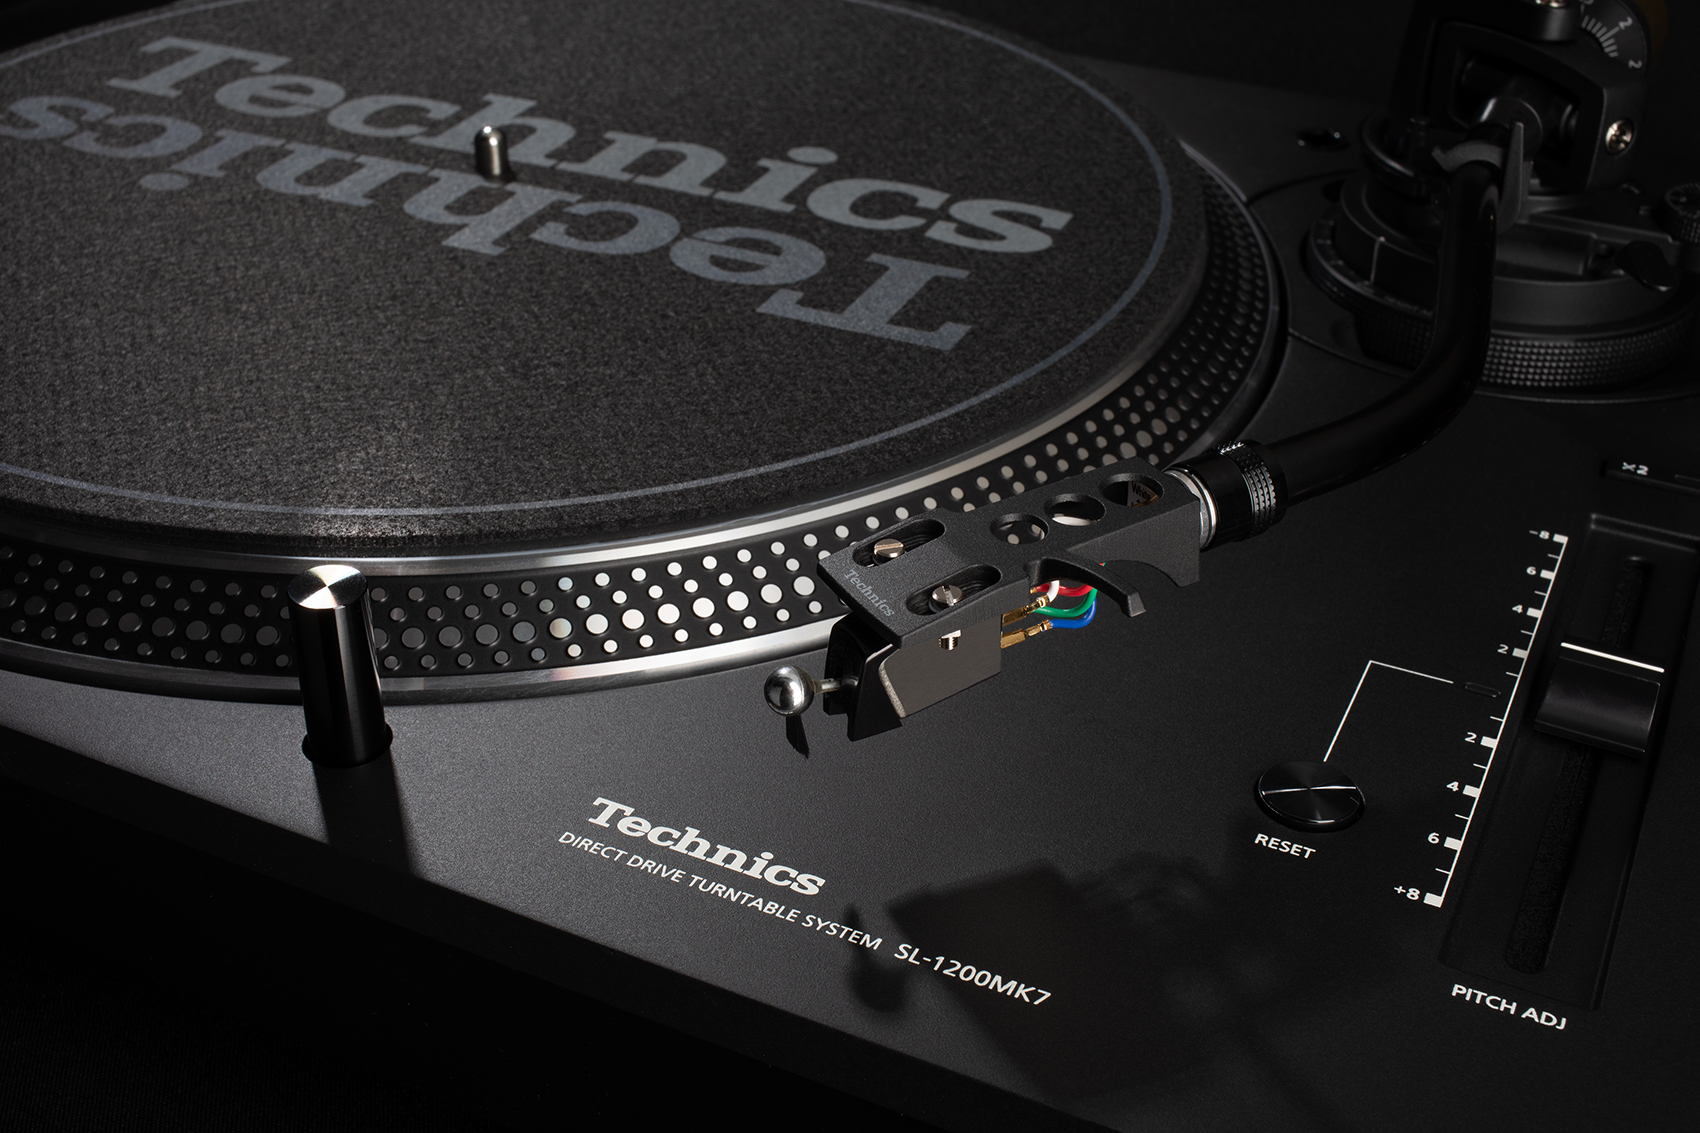 TechnicsSL-1200MK7TurntablebyPanasonicProductPhotographyBoston.MA.2